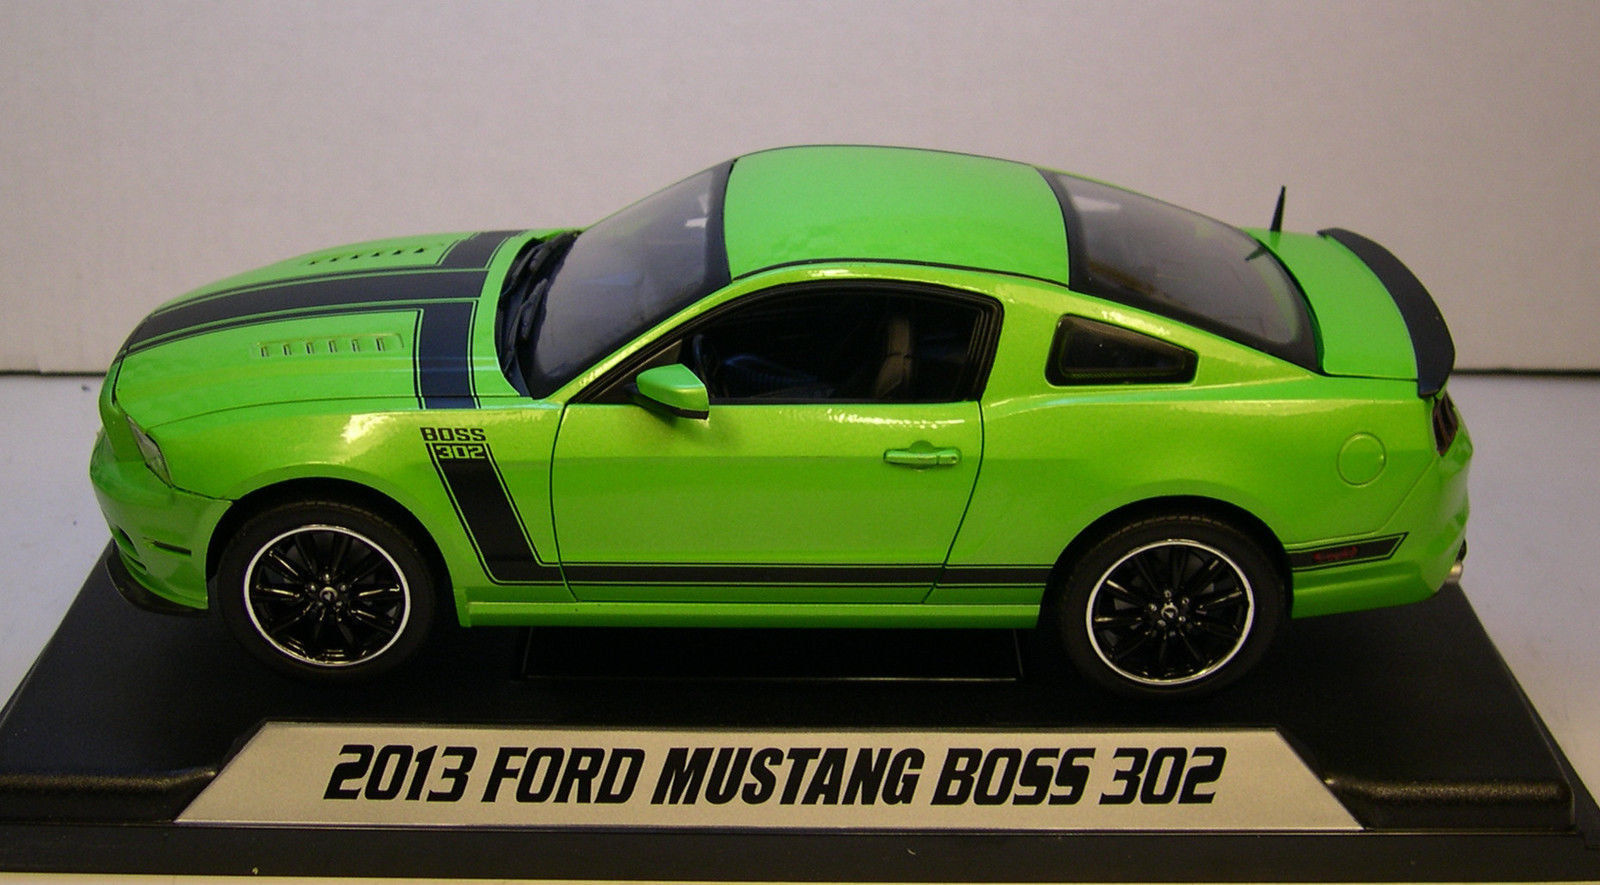 boss302-K- SHELBY COLLECTIBLES FORD MUSTANG BOSS 302 GREEN 2013